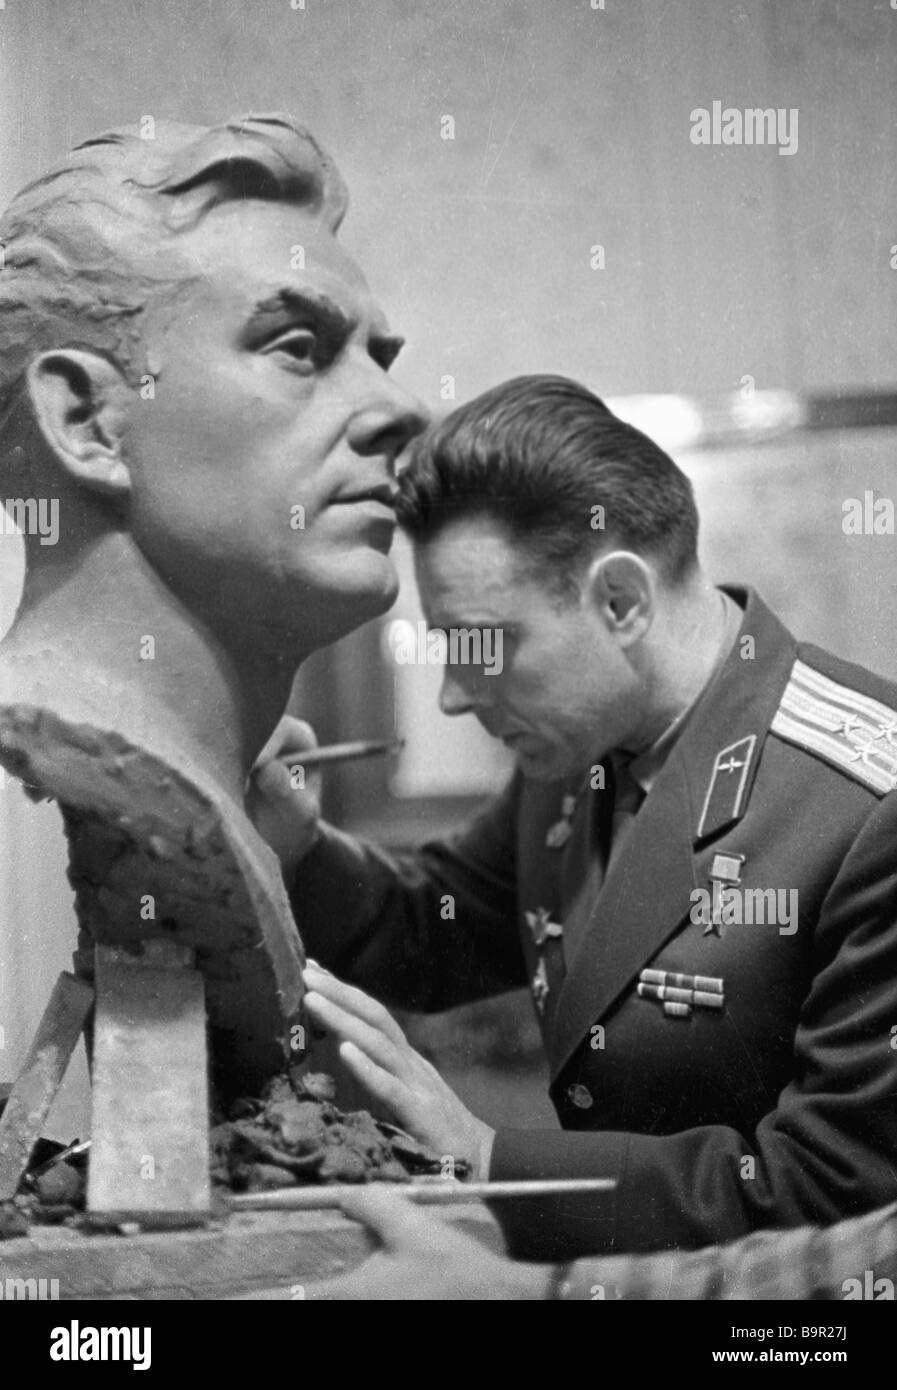 Pilot Cosmonaut Vladimir Komarov signing his name on his sculptural portrait by Postnikov - Stock Image